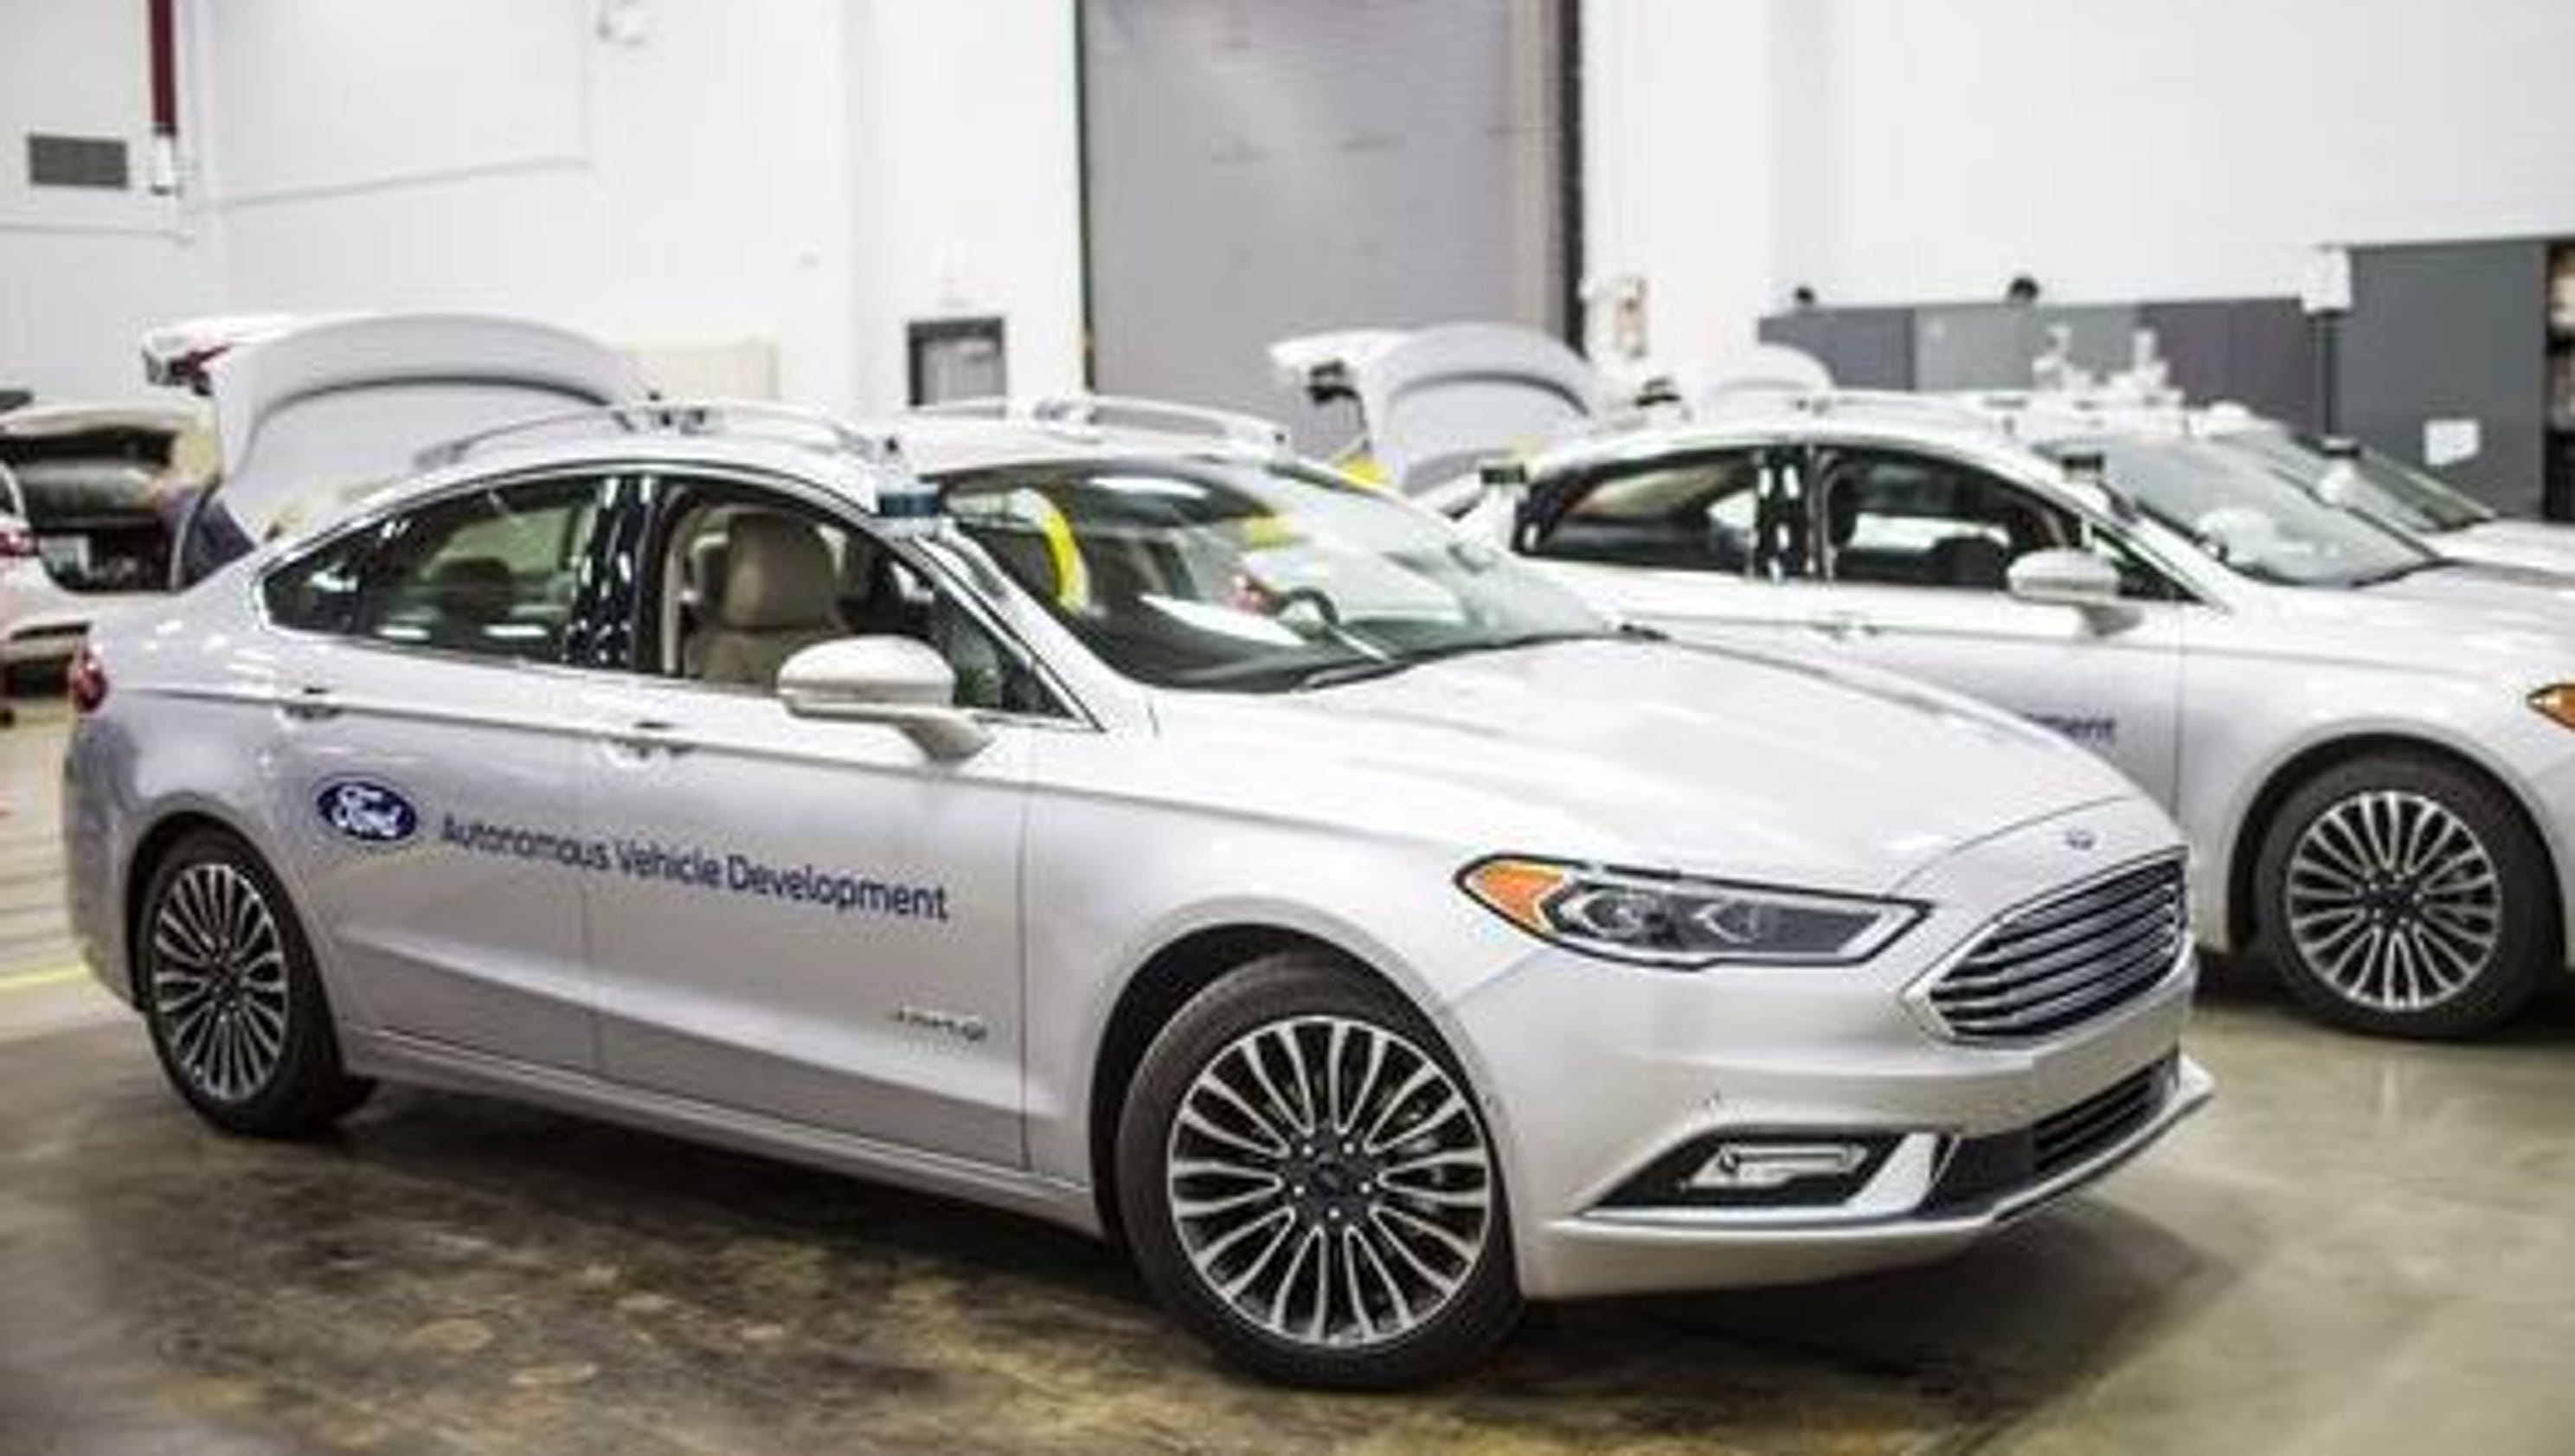 Brain in the trunk: Ford to unveil next self-driving car